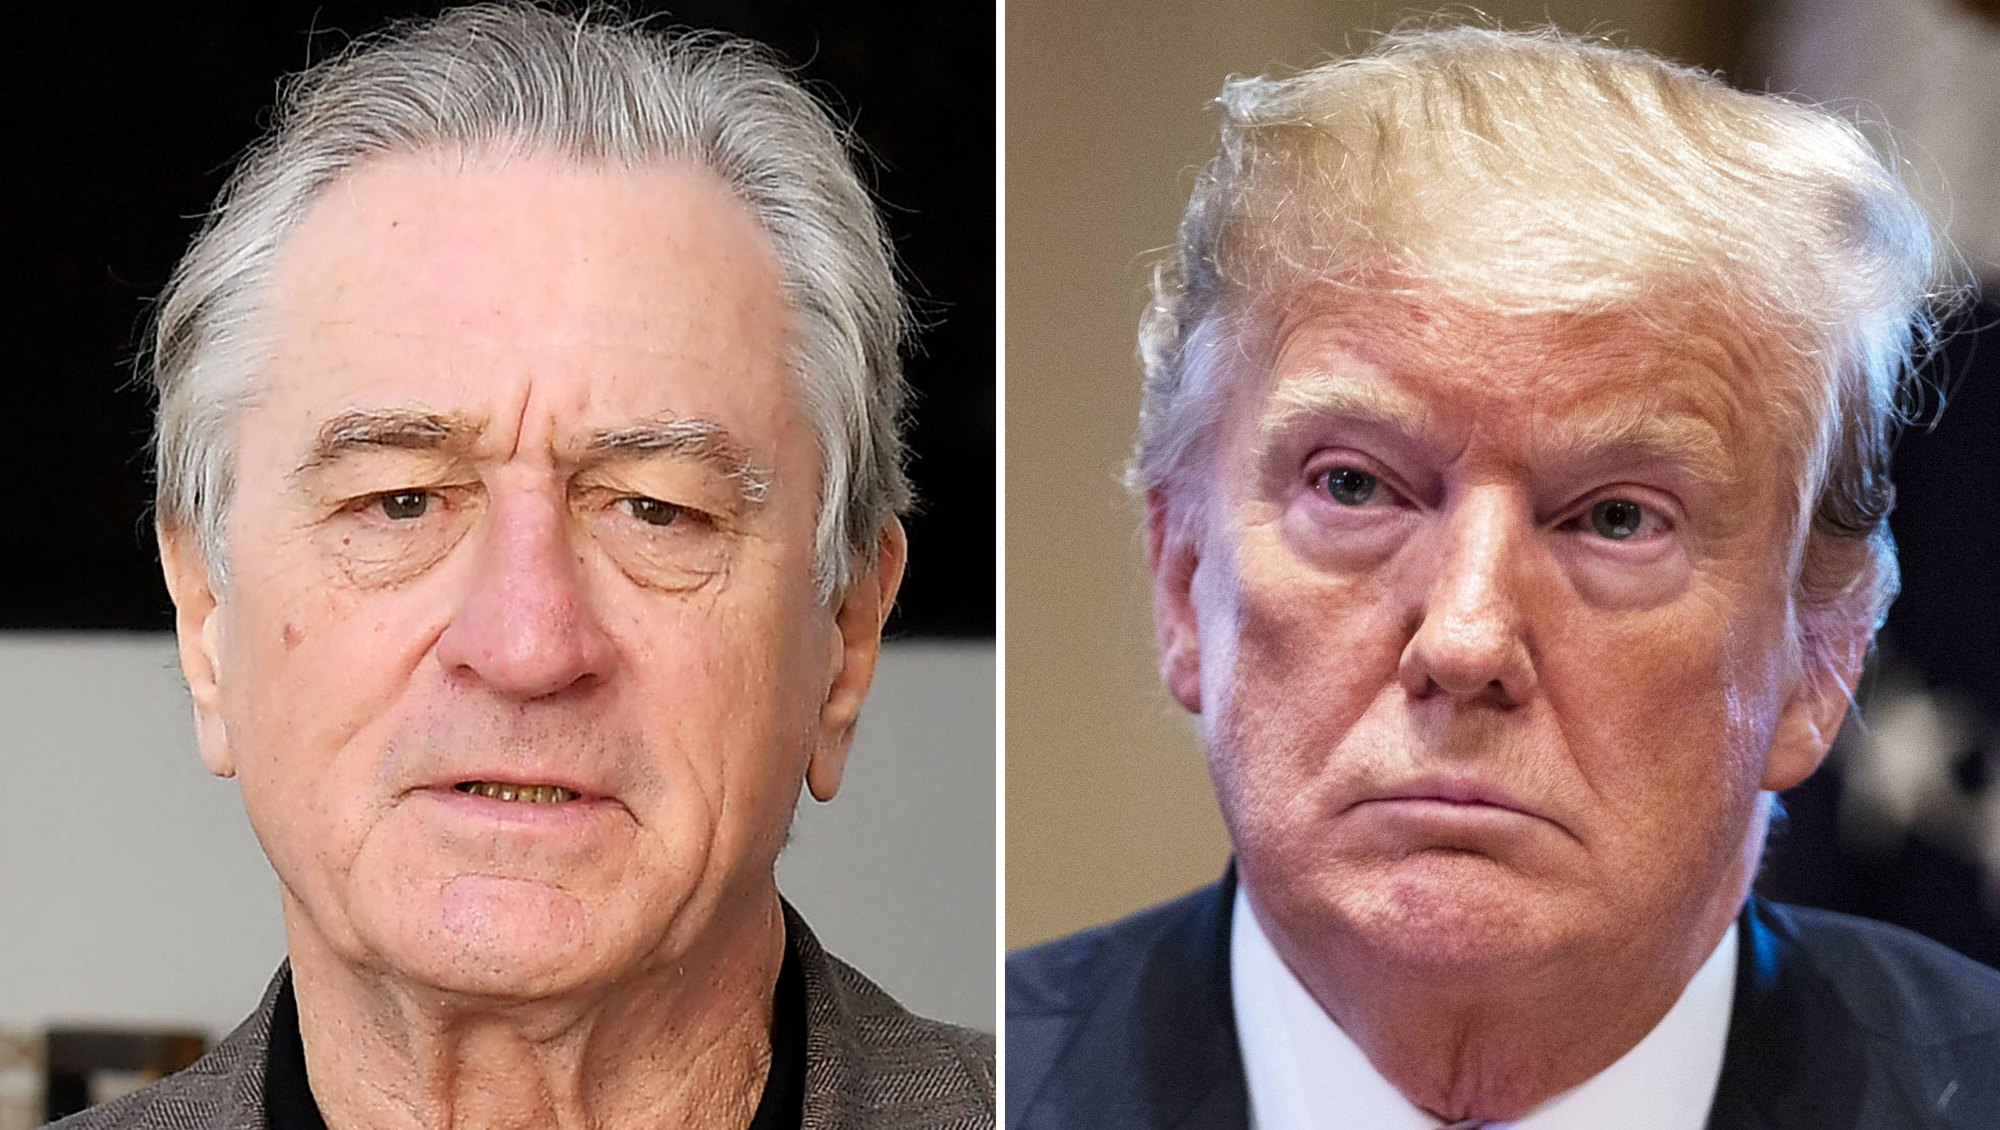 Robert De Niro Declares Donald Trump Is a 'Real Racist' and 'White Supremacist'